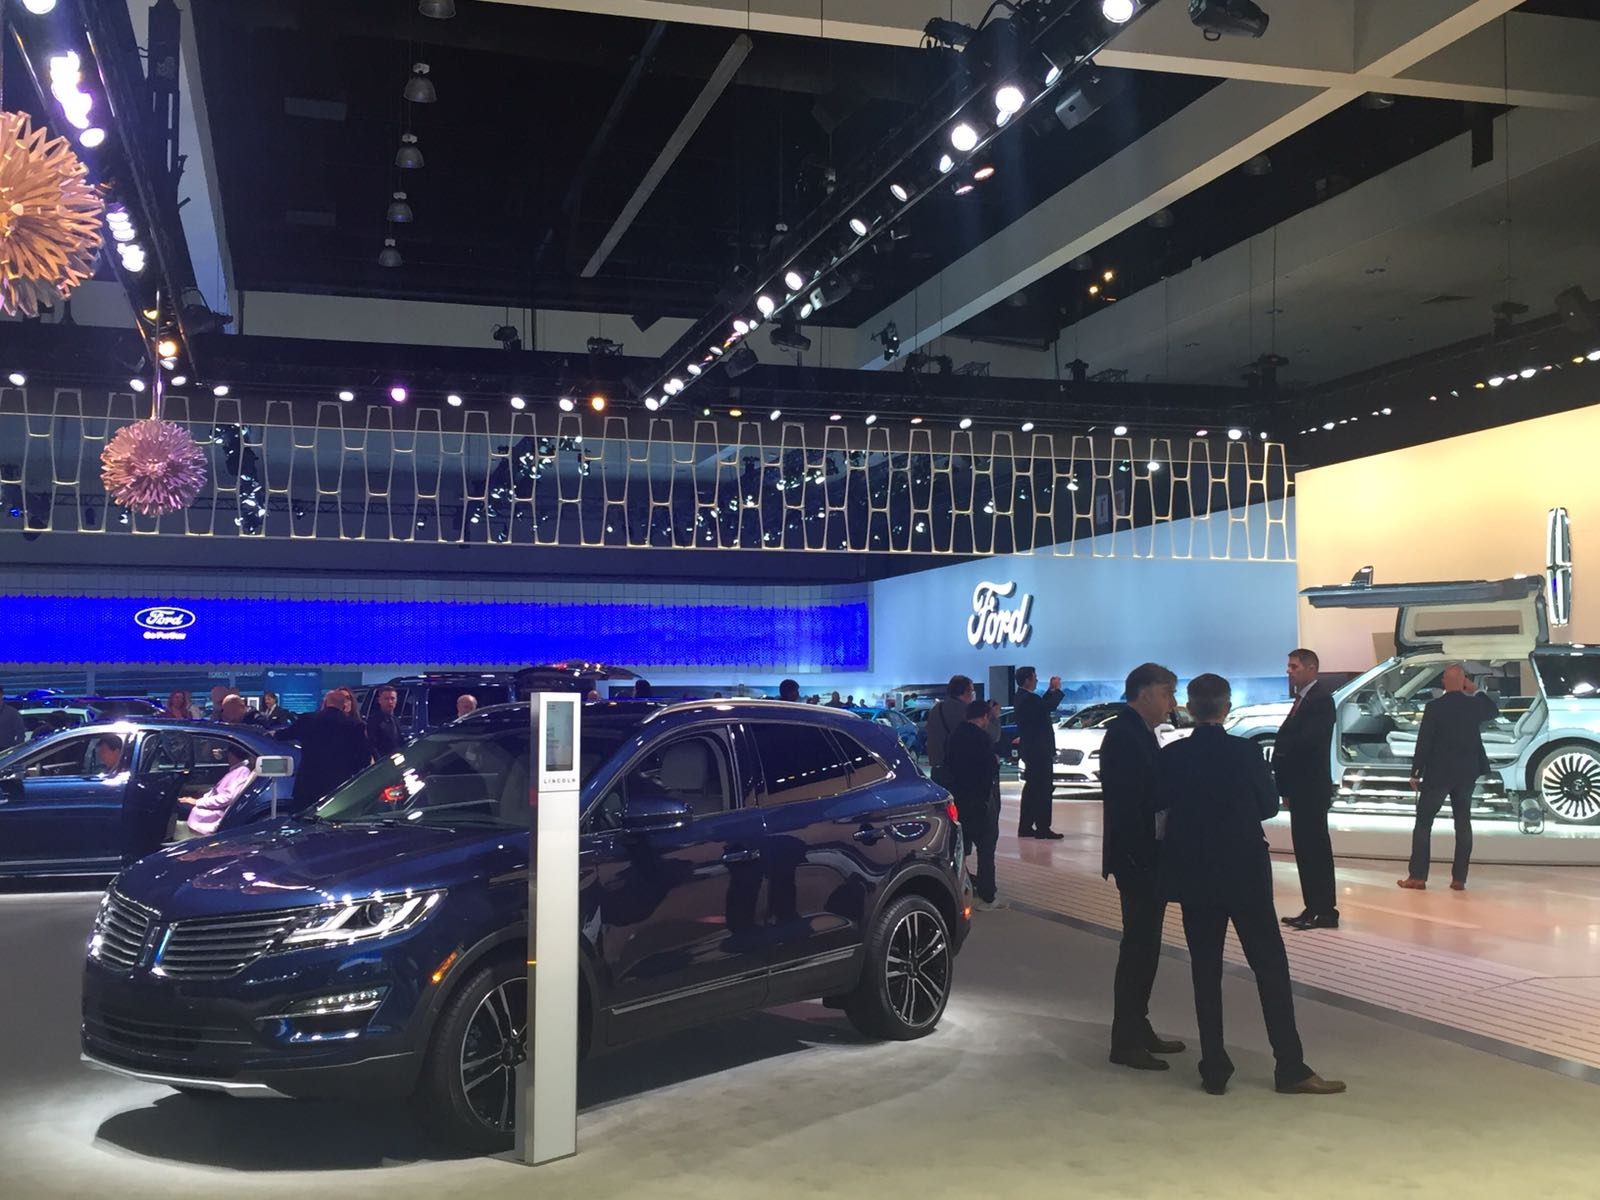 Ford debuted the new Ecosport SUV at the LA Auto Show. The new SUV targets environmentally conscious millennials and older baby-boomers looking for a small sized SUV.